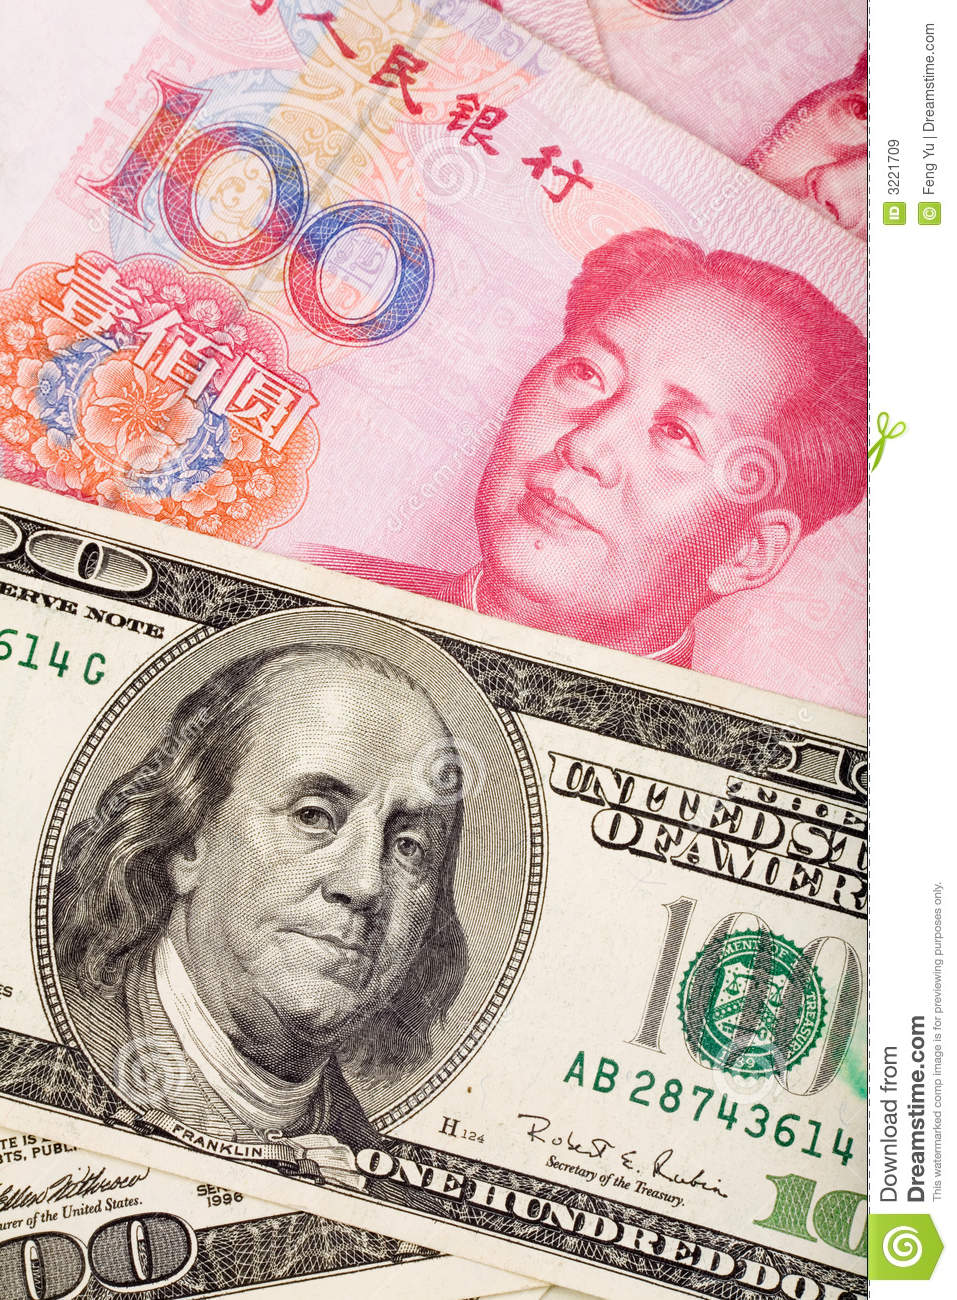 how china's currency manipulation affects us The united states could against its imports to offset the effects of the depressed currency retaliate against china's currency manipulation.